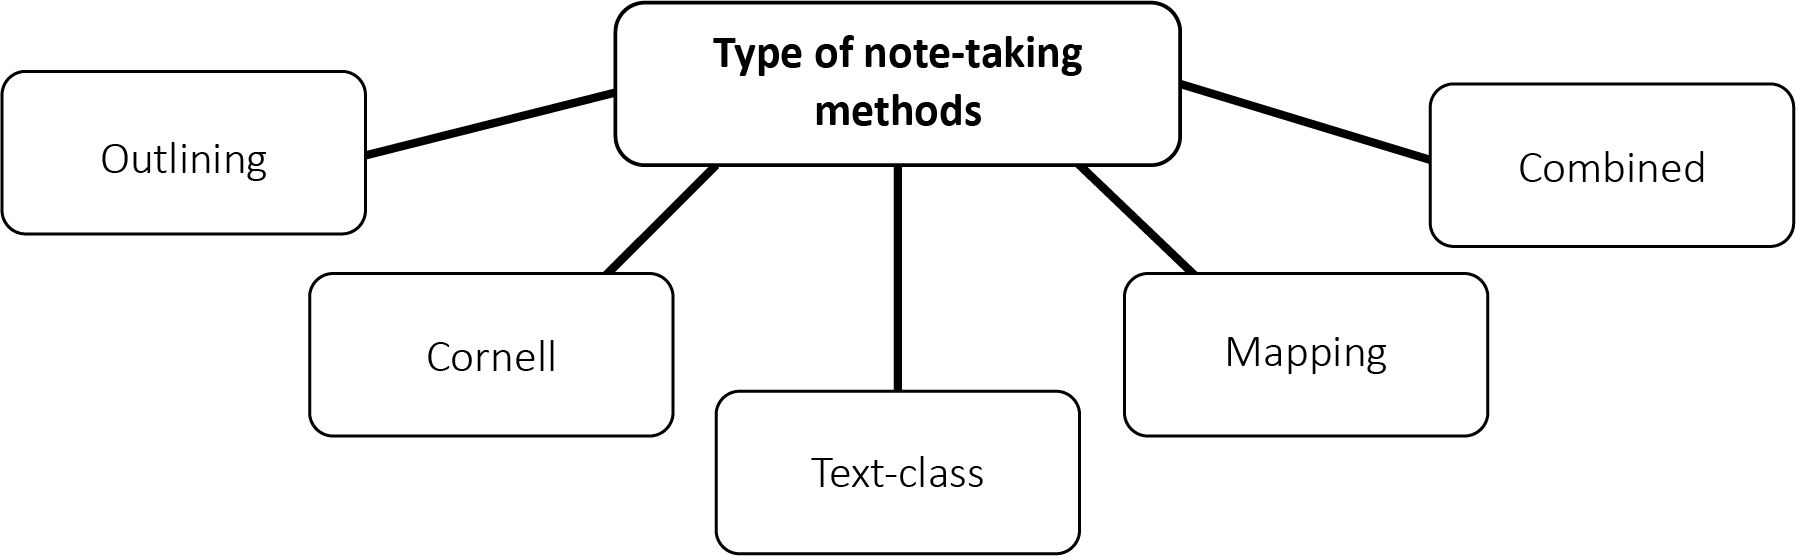 Visual representation of Note-taking methods : (1) Outlining, (2) Cornell, (3) Text-Class, (4) Mapping and (5) Combined